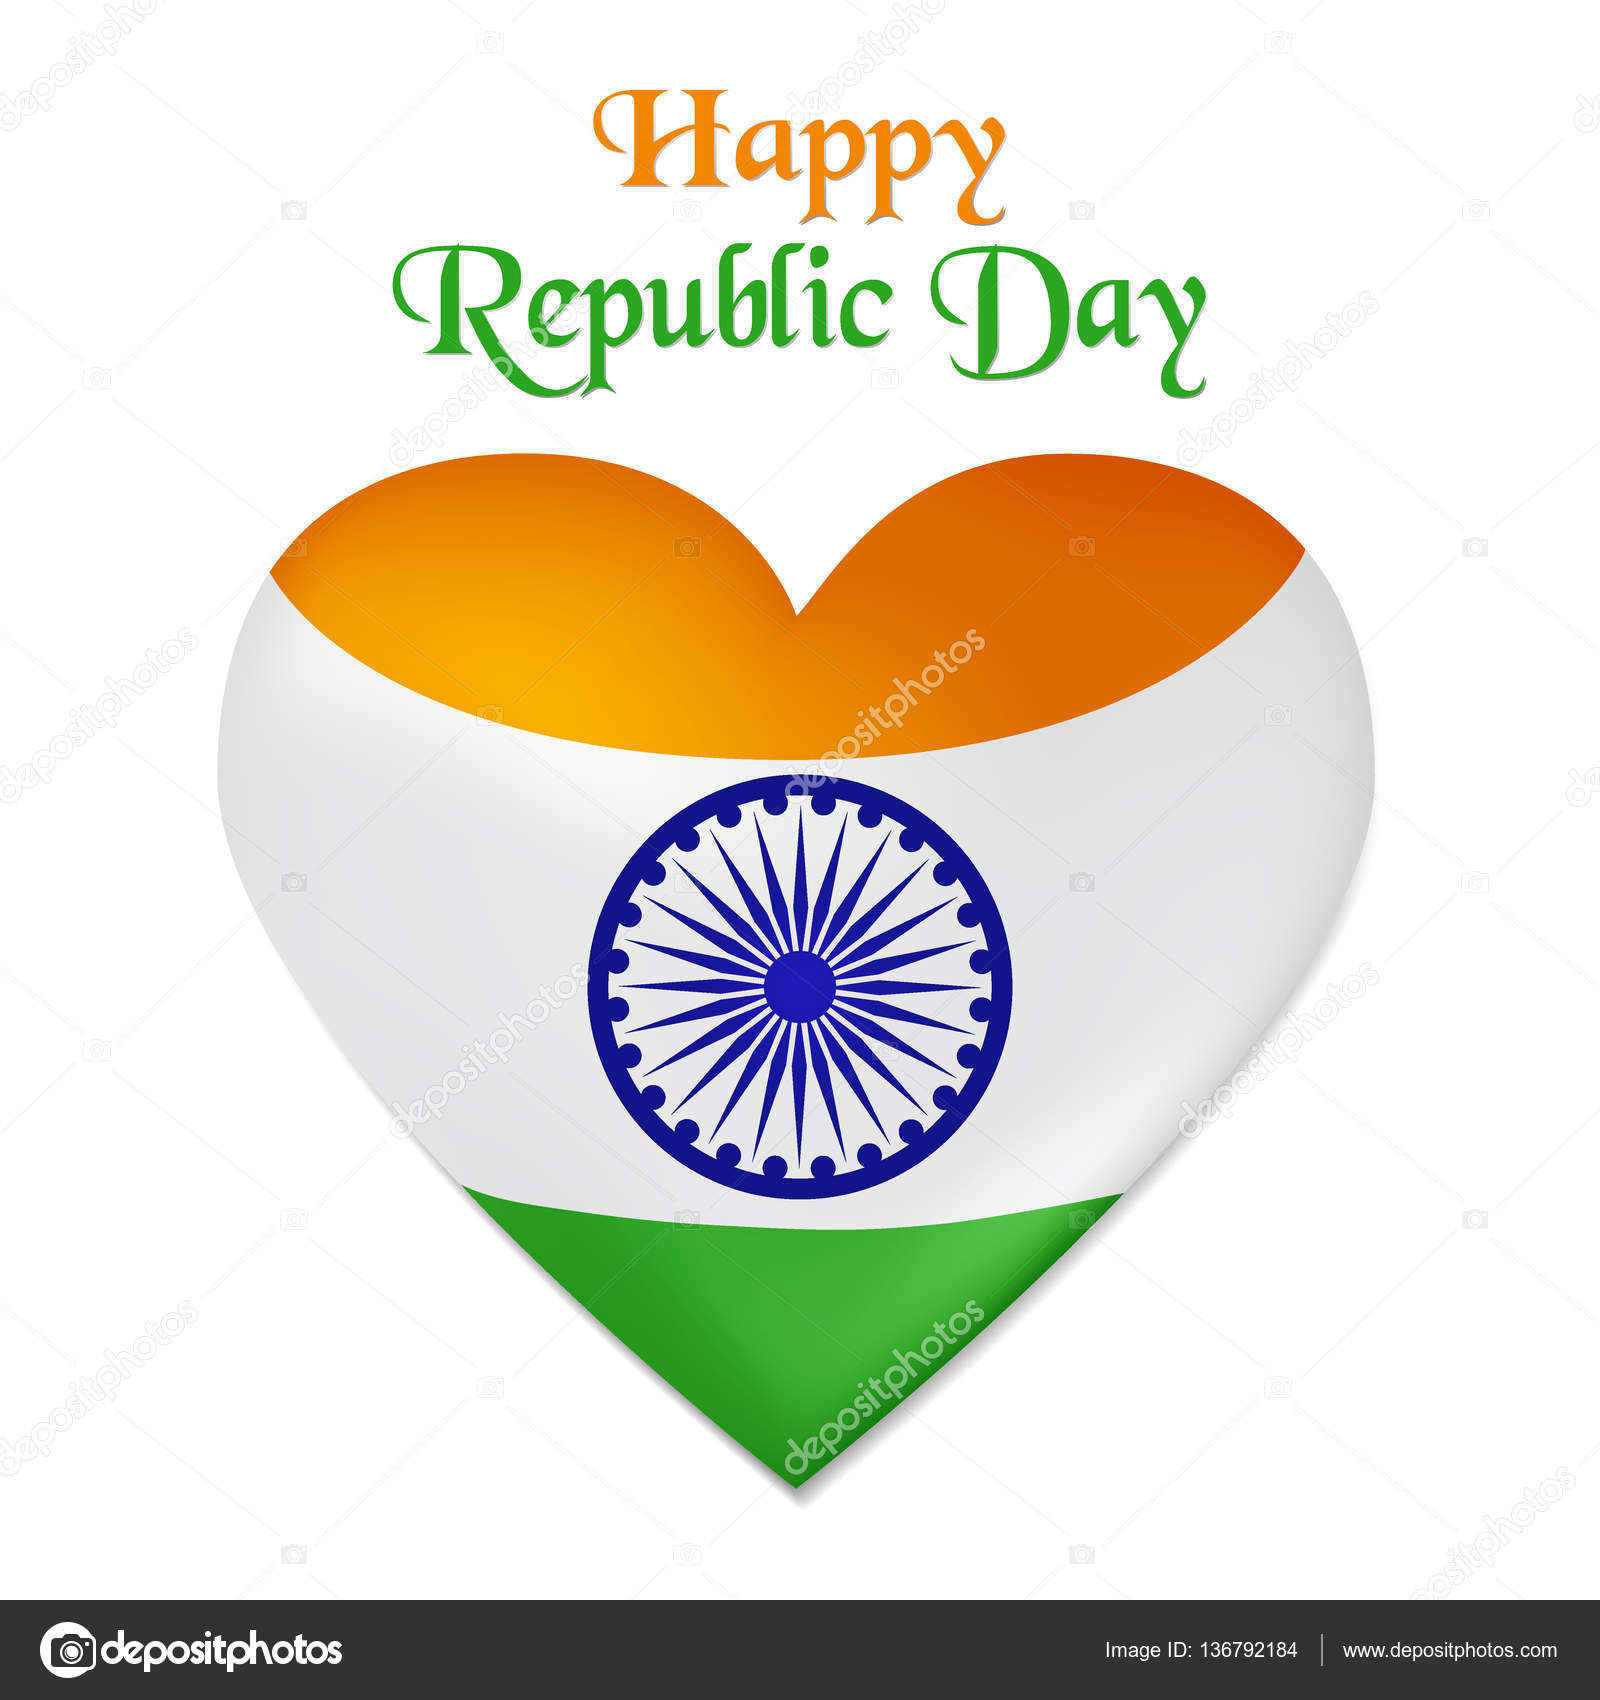 Vector illustration of Republic Day in India Heart looking as the